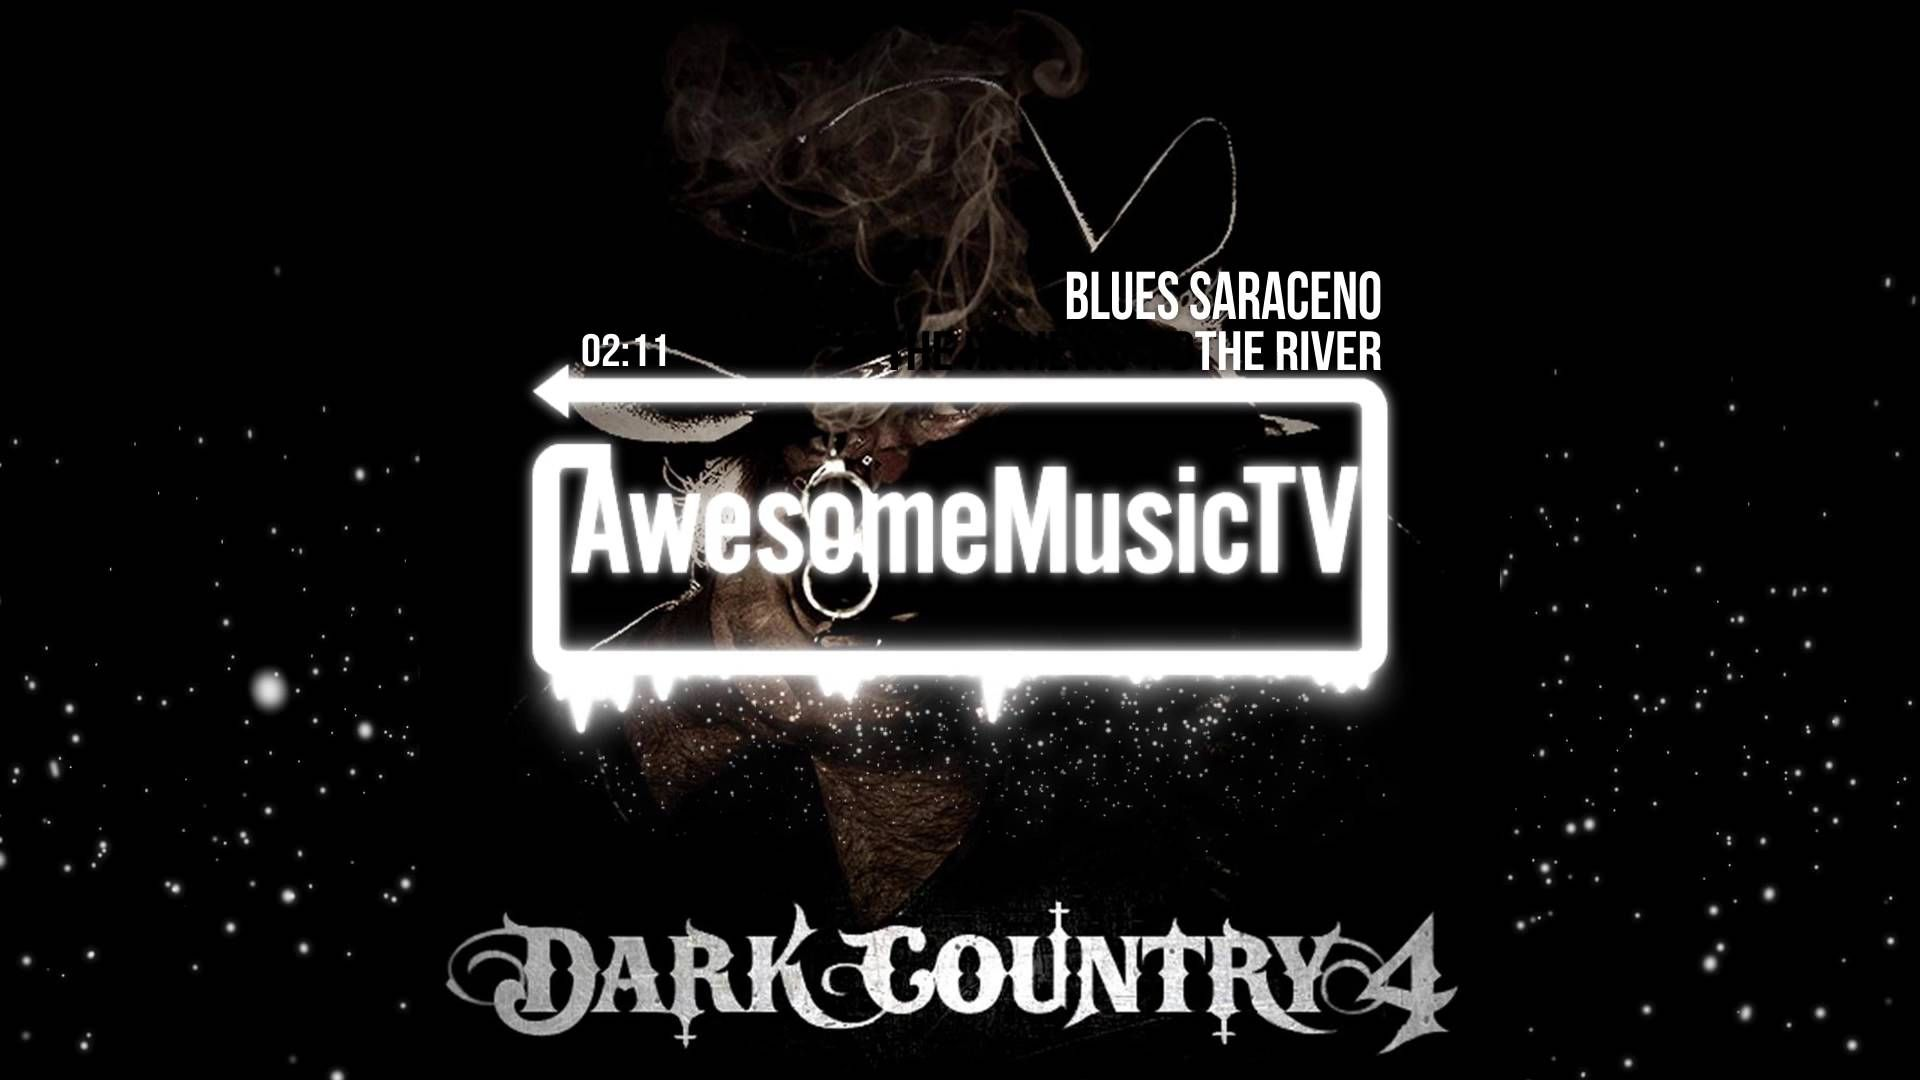 blues saraceno the river dark country 4 bands and music i